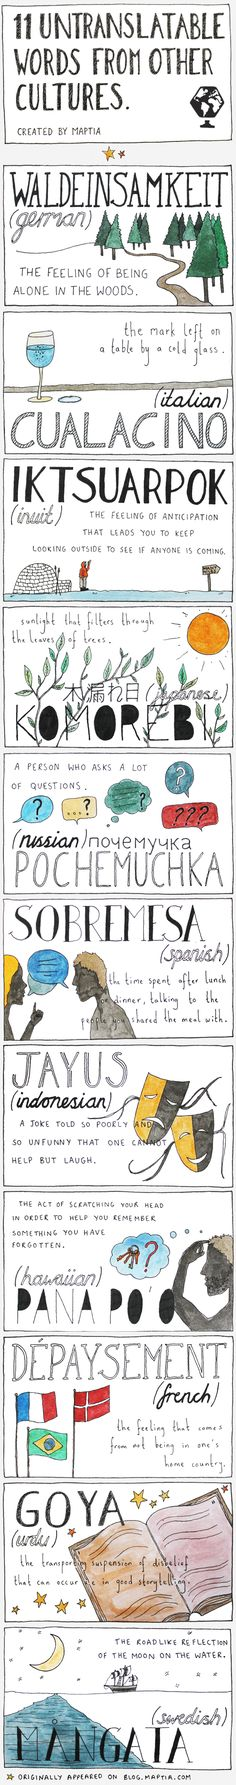 Untranslatable phrases from foreign languages